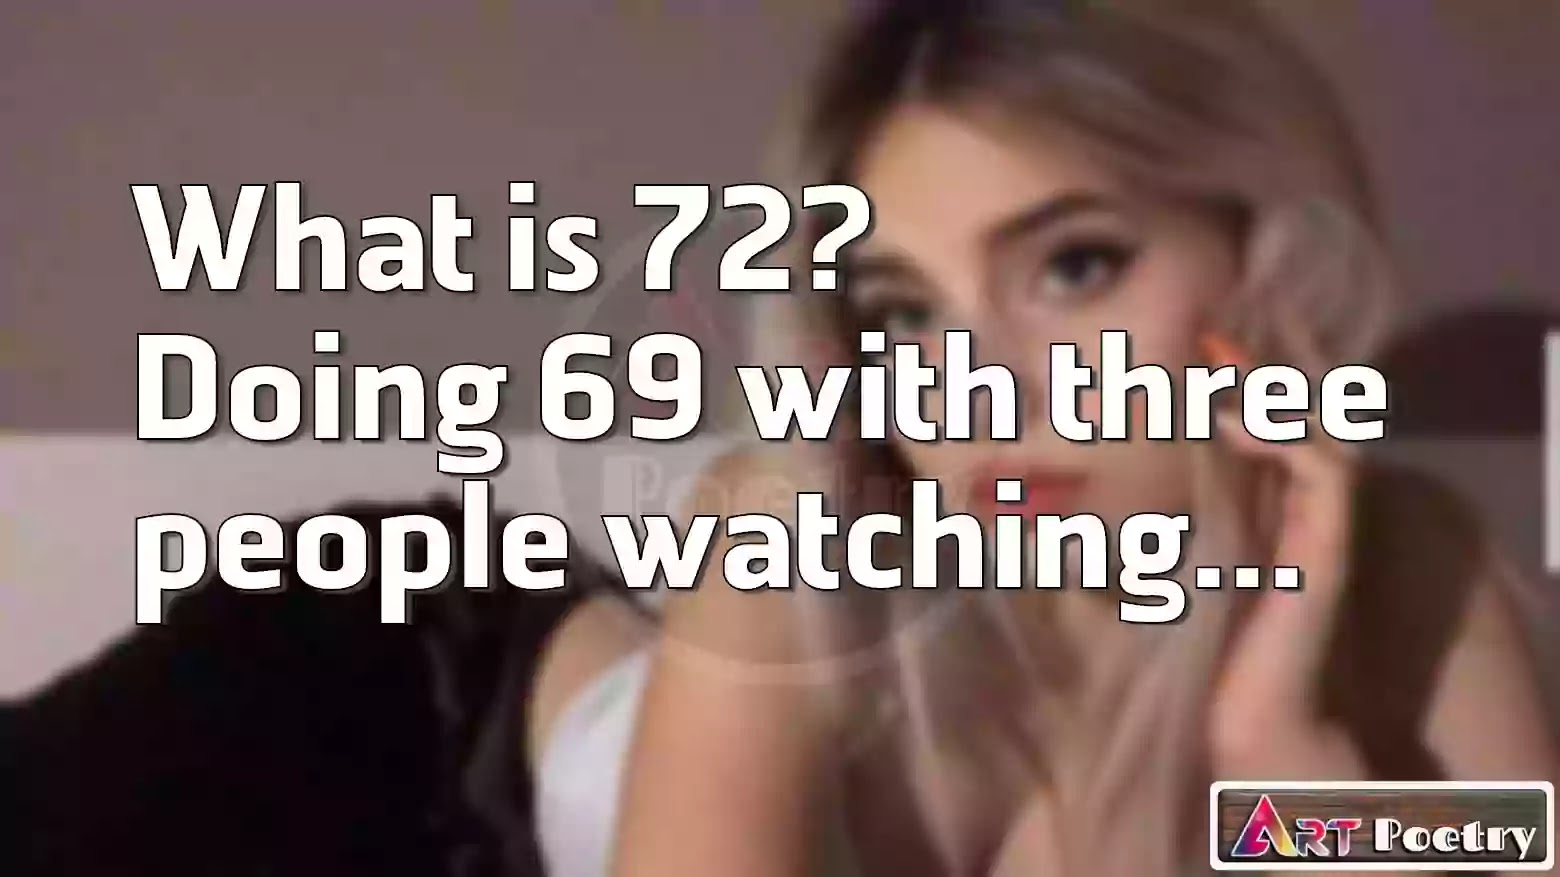 sissy caption | hentai caption | sissy caption story | sissy caption stories | sissy caption reddit | sissy captions | sissy hypno | sissy hypnosis | sissy training, What is 72? Doing 69 with three  people watching.